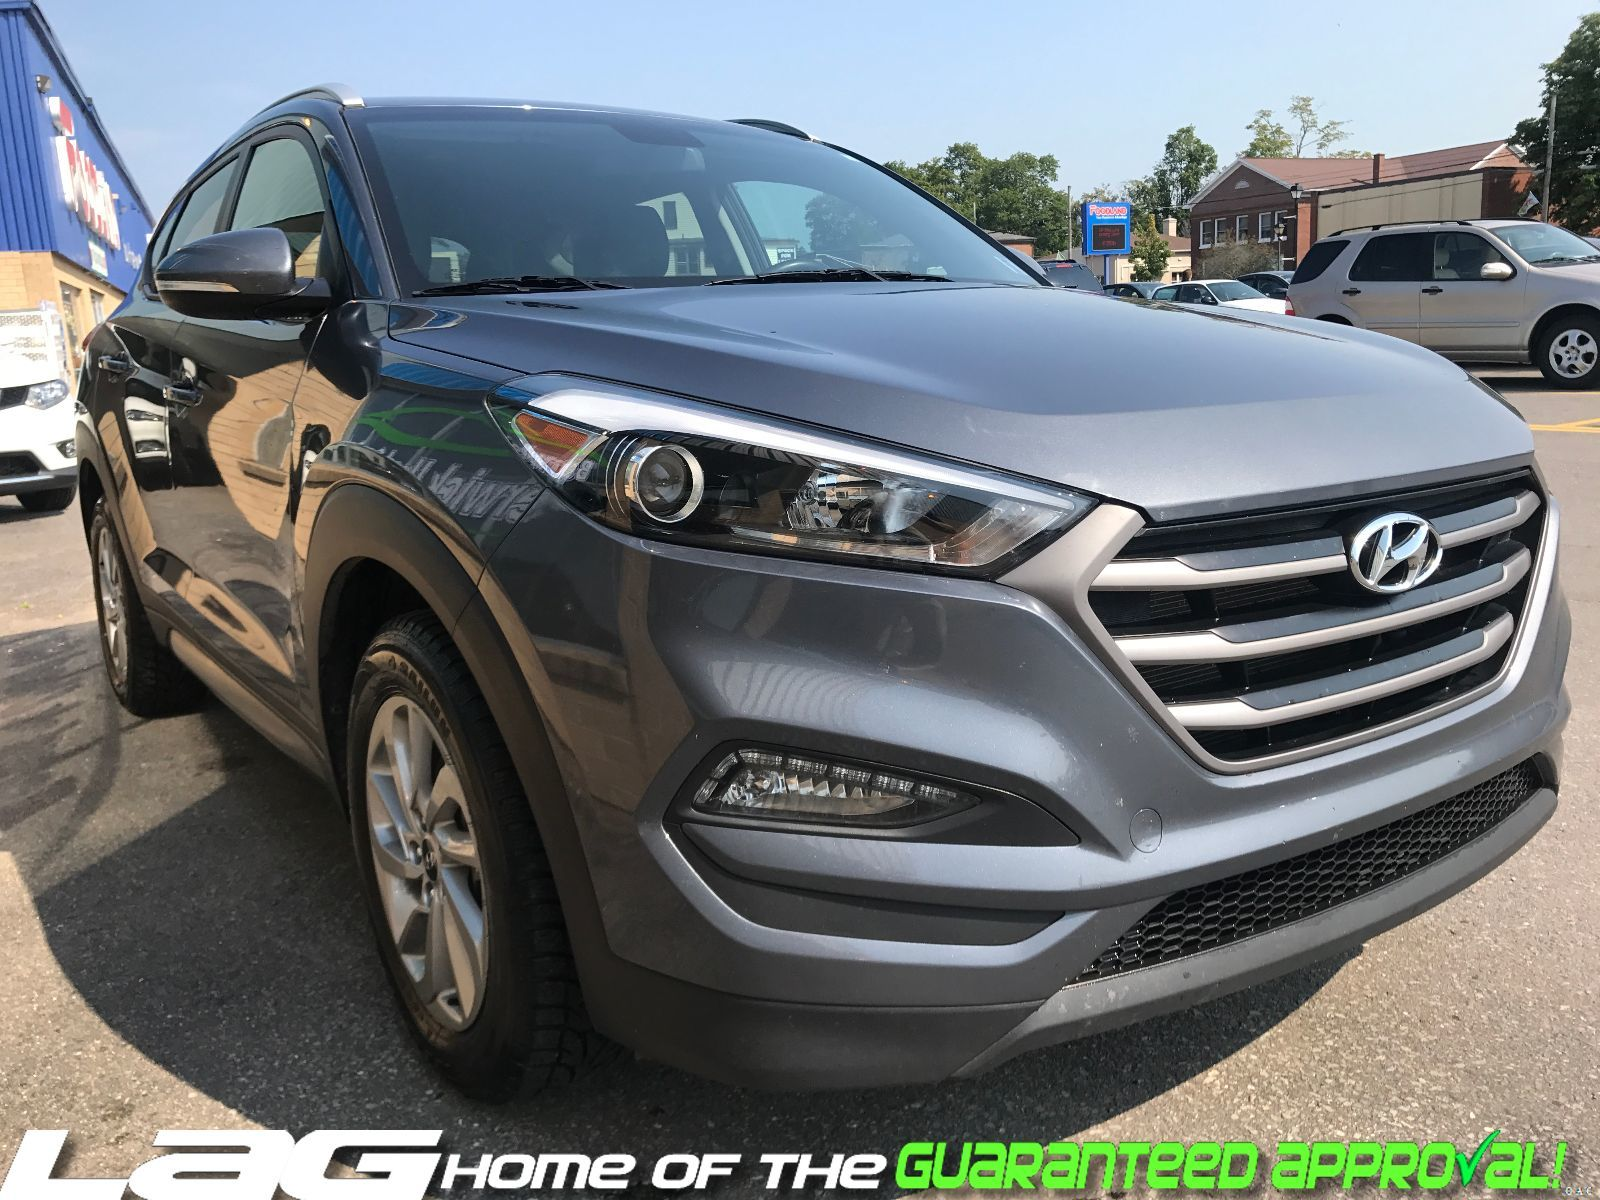 awd navigation camera used hyundai utility rearview seats edmonton wheel heated new ultimate tucson turbo steering sport river in inventory